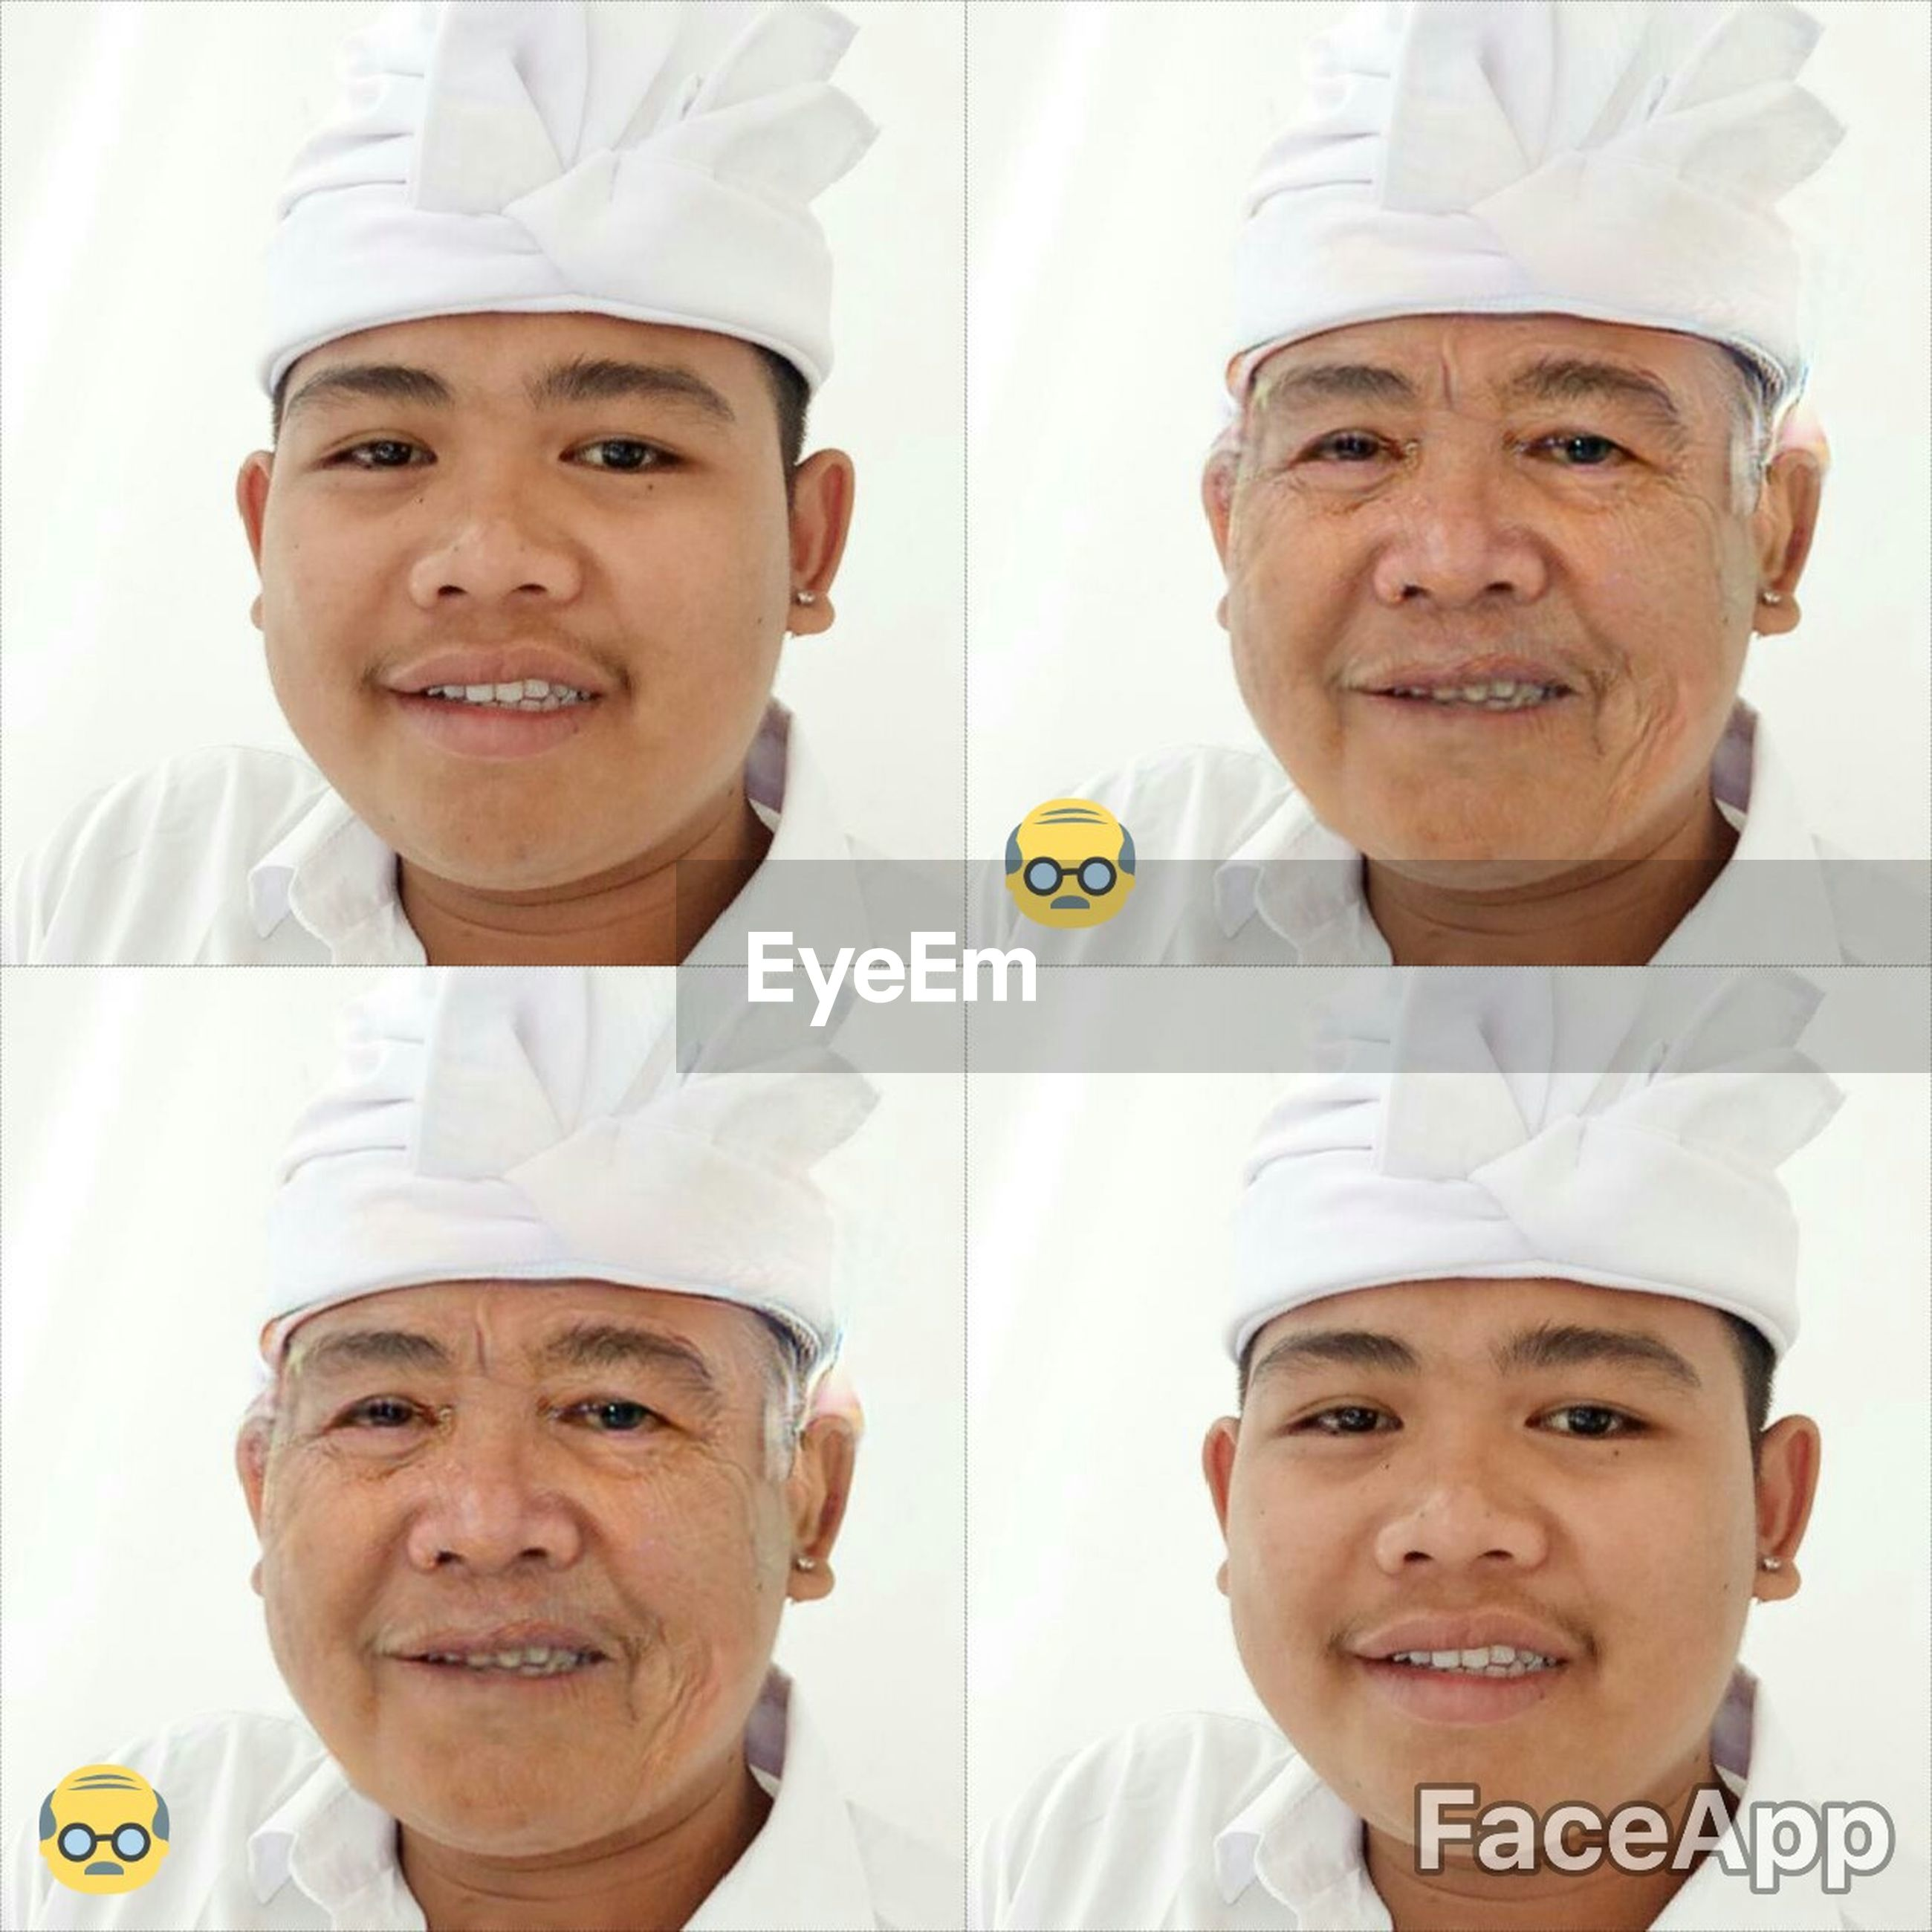 looking at camera, portrait, uniform, occupation, headshot, real people, smiling, one person, mature men, happiness, mature adult, chef's hat, indoors, working, chef, expertise, men, business, headwear, coworker, teamwork, young adult, close-up, only men, day, adult, people, adults only